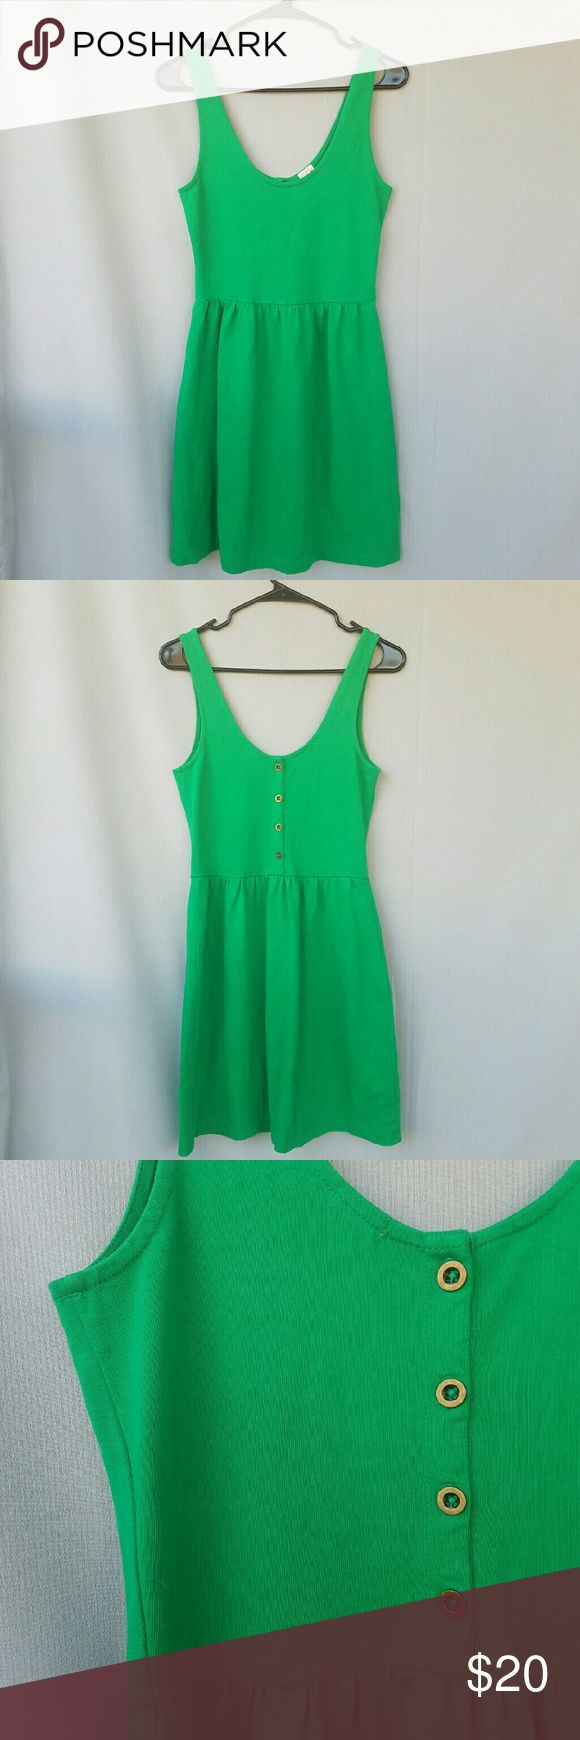 J CREW Kelly Green Dress Striking green, with adorable buttons along the back. Excellent condition. Feel free to ask me any questions. Happy shopping! J. Crew Dresses Midi